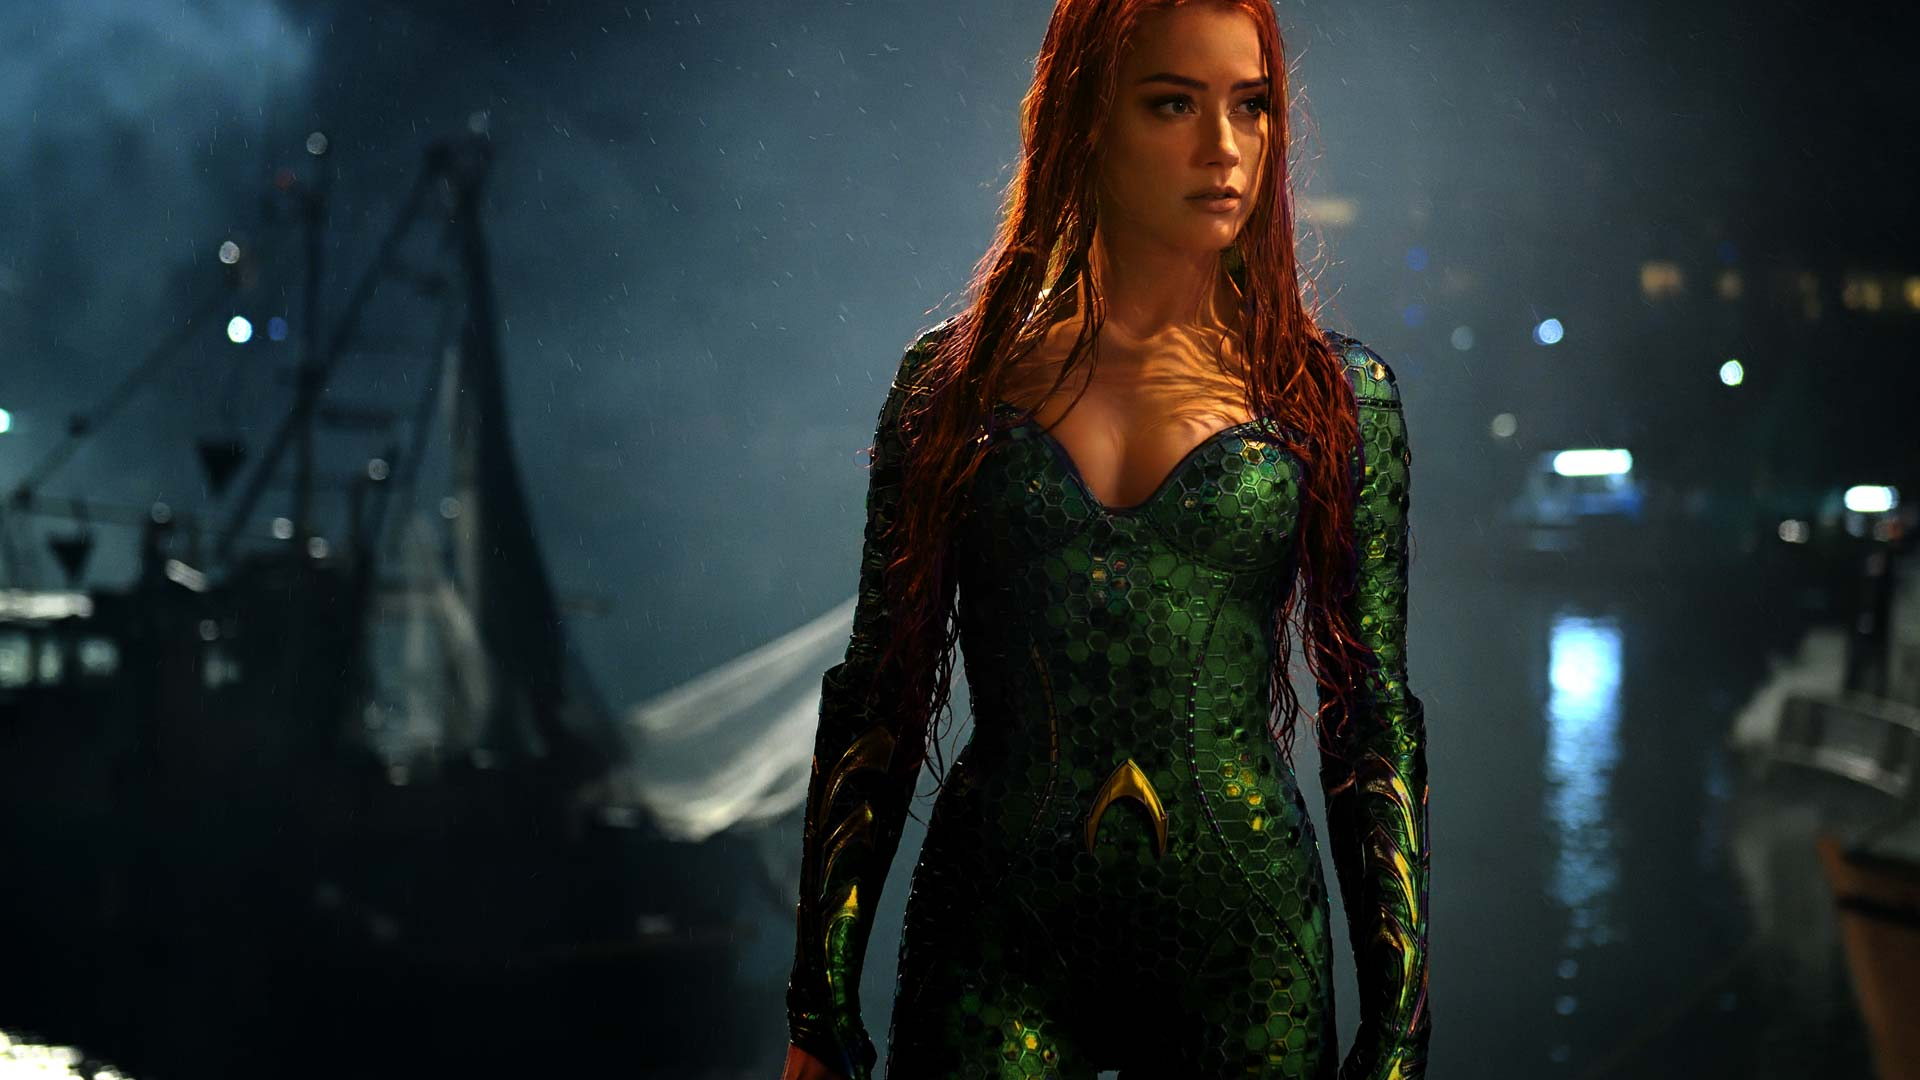 https://i2.wp.com/assets.papelpop.com/wp-content/uploads/2018/09/mera-aquaman-movie-xu.jpg?ssl=1